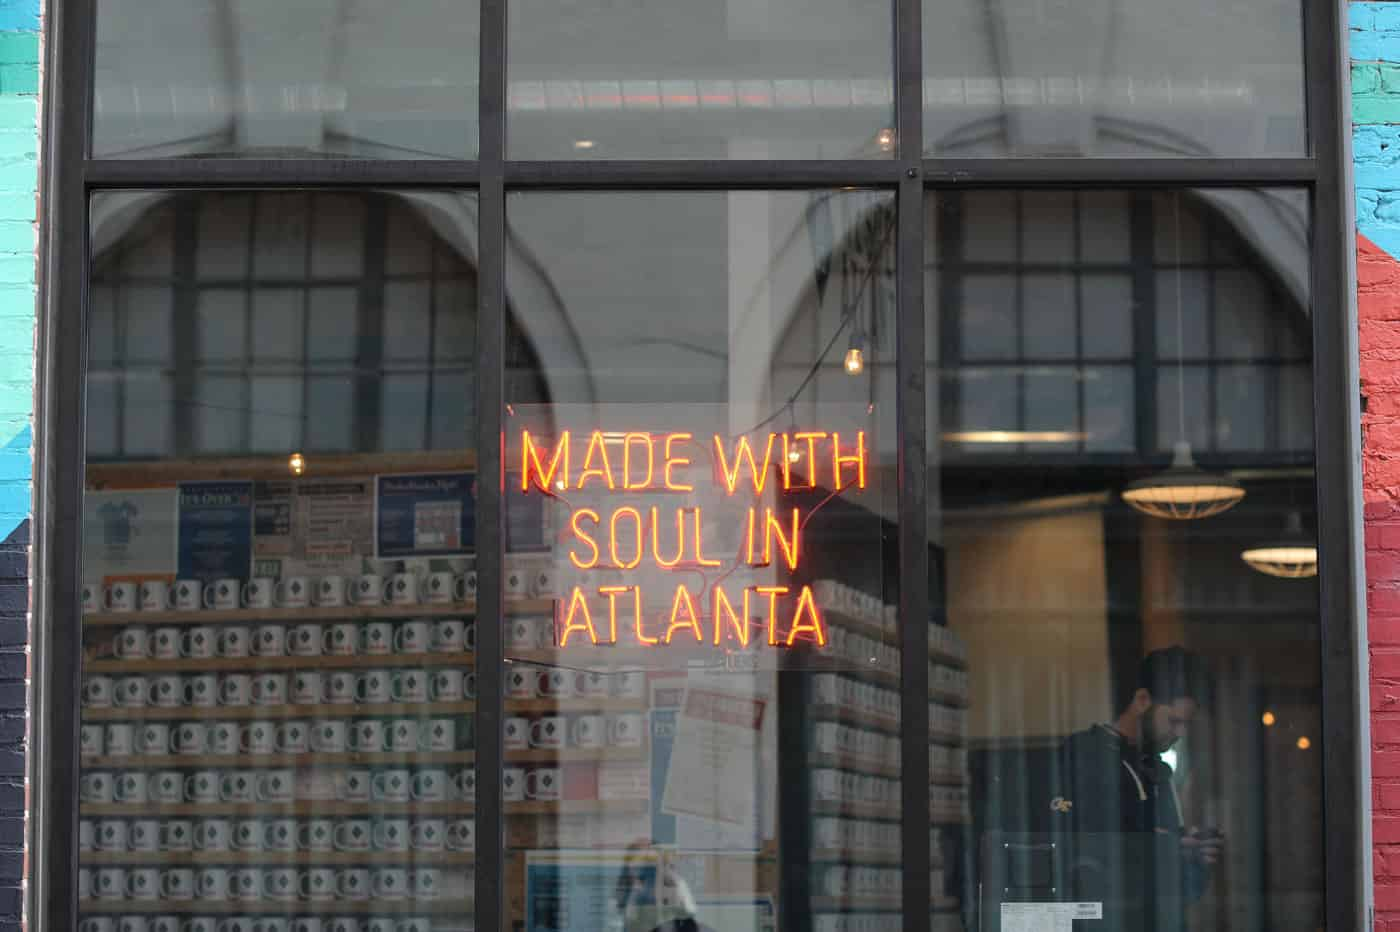 Made with soul in Atlanta neon sign